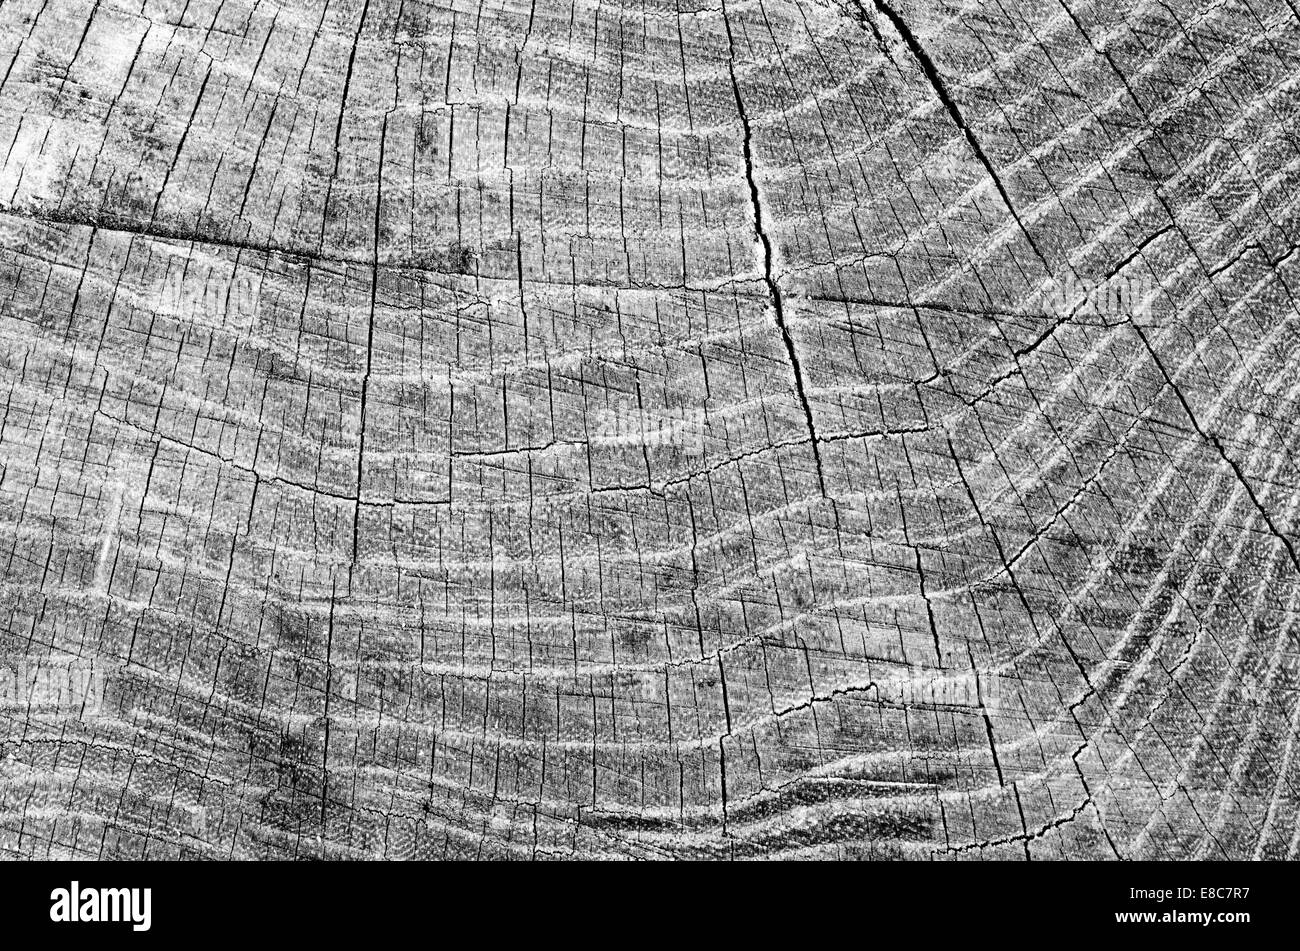 wooden texture background of cut tree - Stock Image